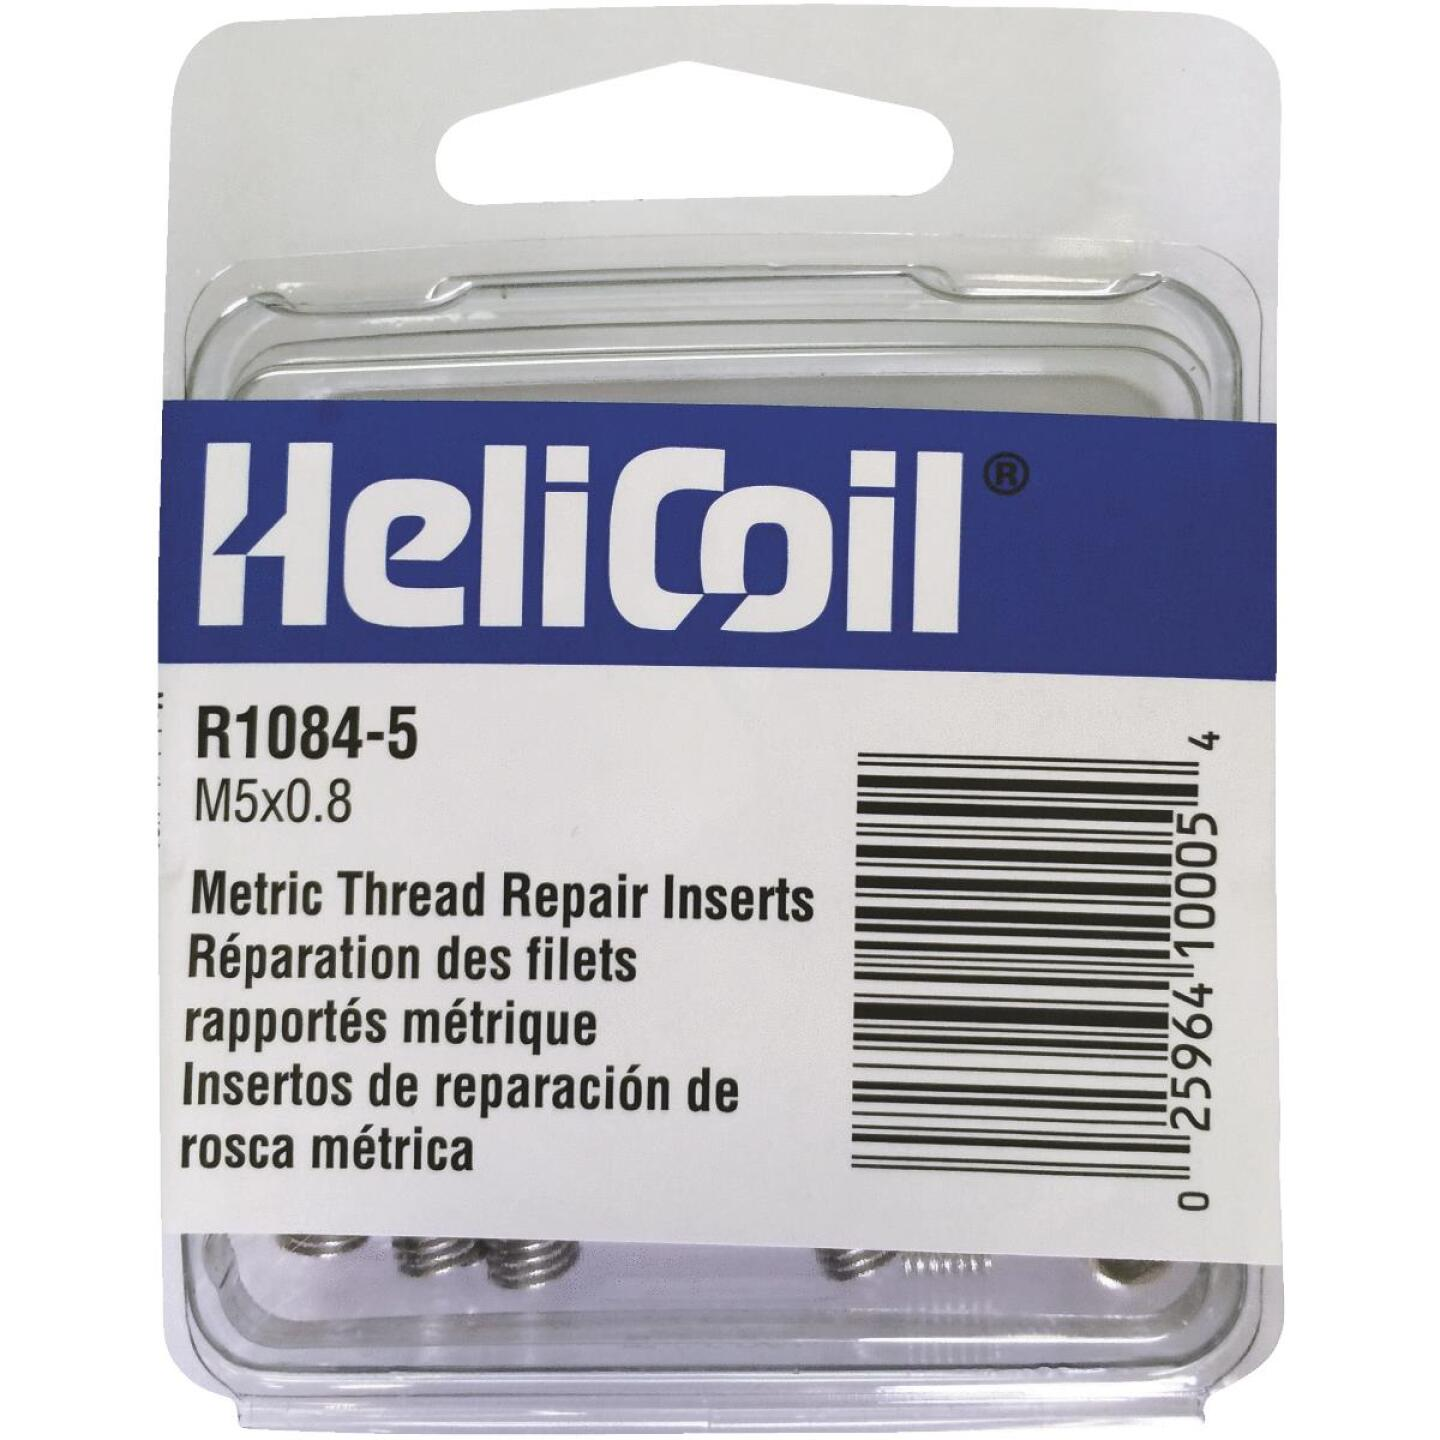 HeliCoil M5 x 0.8 Thread Insert Pack (12-Pack) Image 1